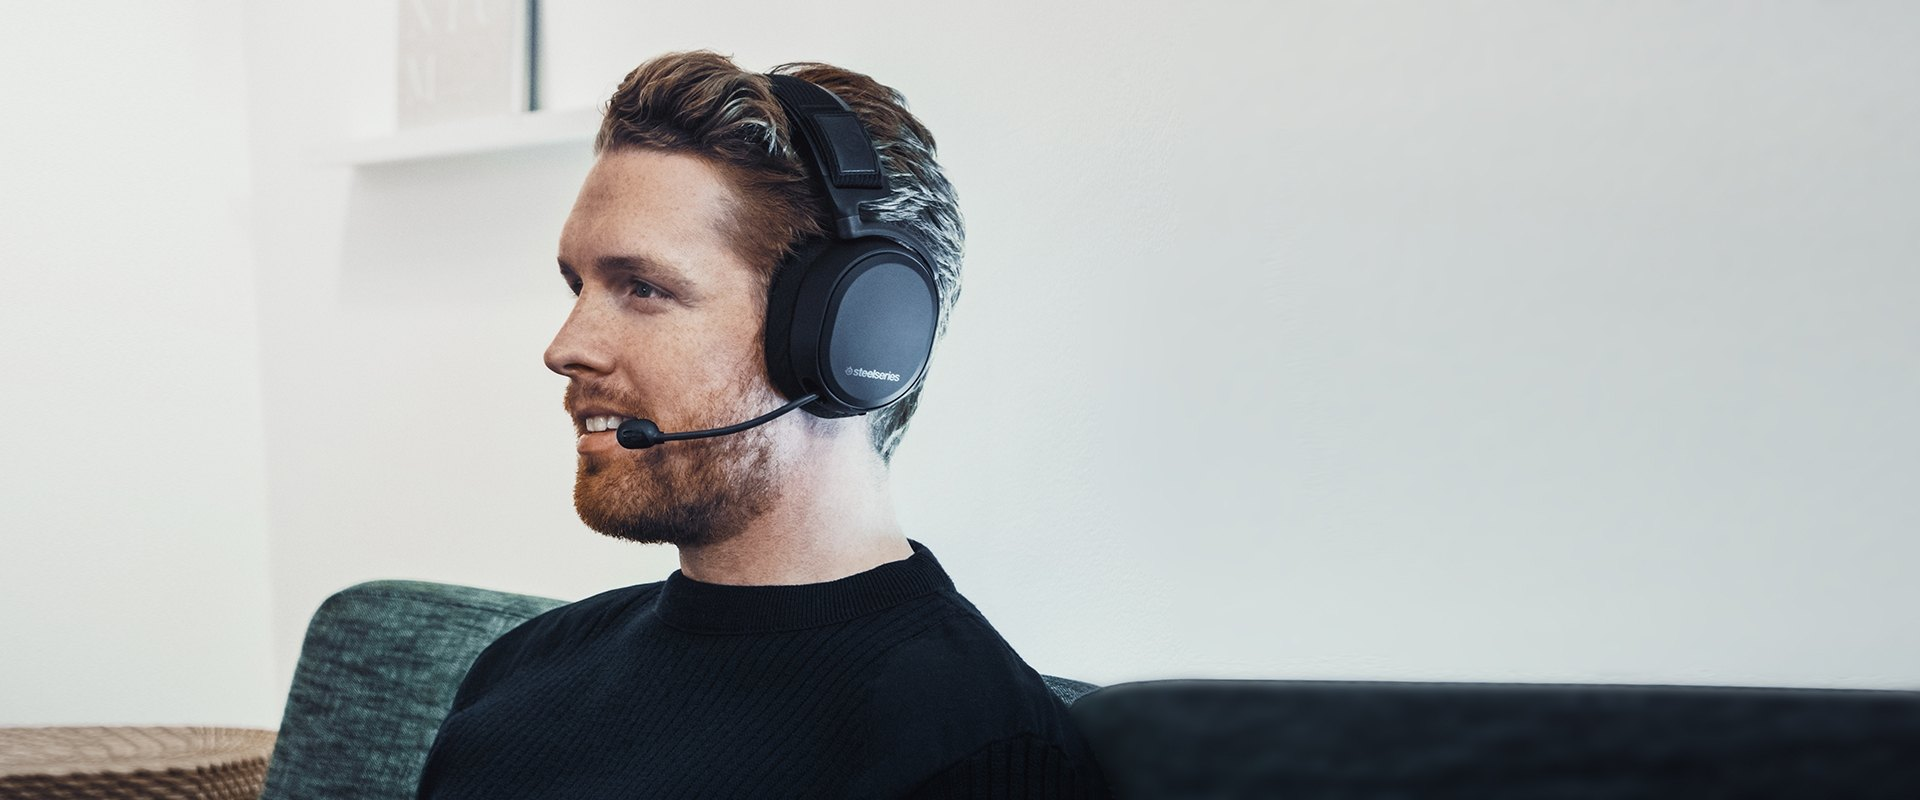 A user smiling while wearing the Arctis Pro Wireless, microphone in the extended position